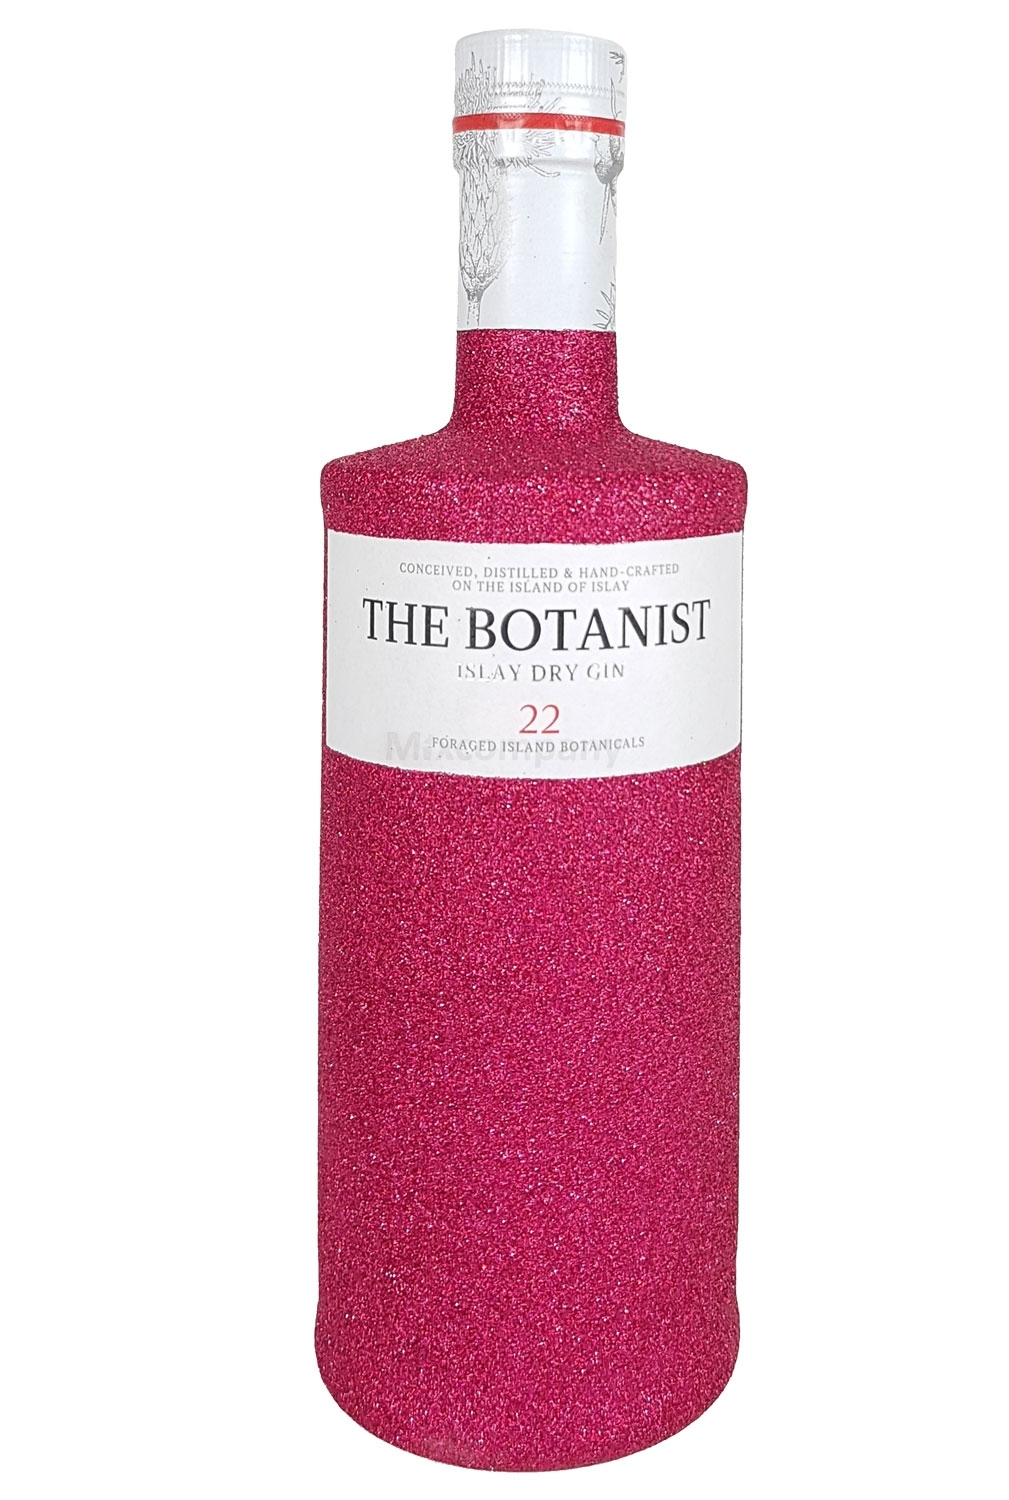 The Botanist Islay Dry Gin 0,7l 700ml (46% Vol) Bling Bling Glitzerflasche in hot pink -[Enthält Sulfite]